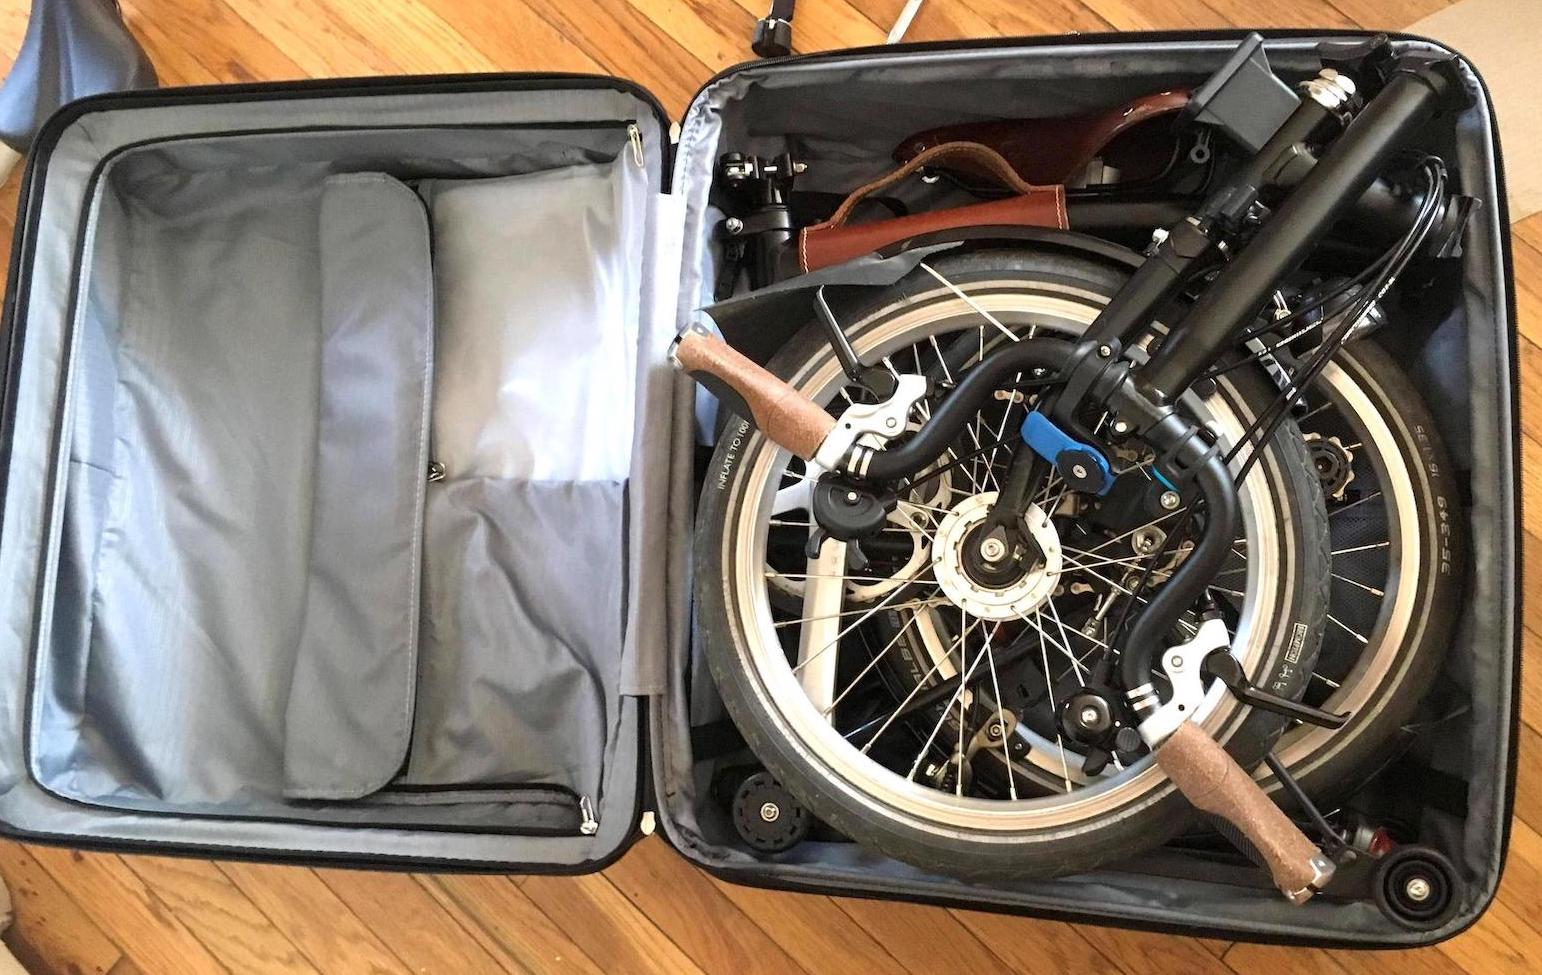 ff0847d0e1b3 How to Bring a Folding Bike onto an Airplane without Paying Extra Fees?